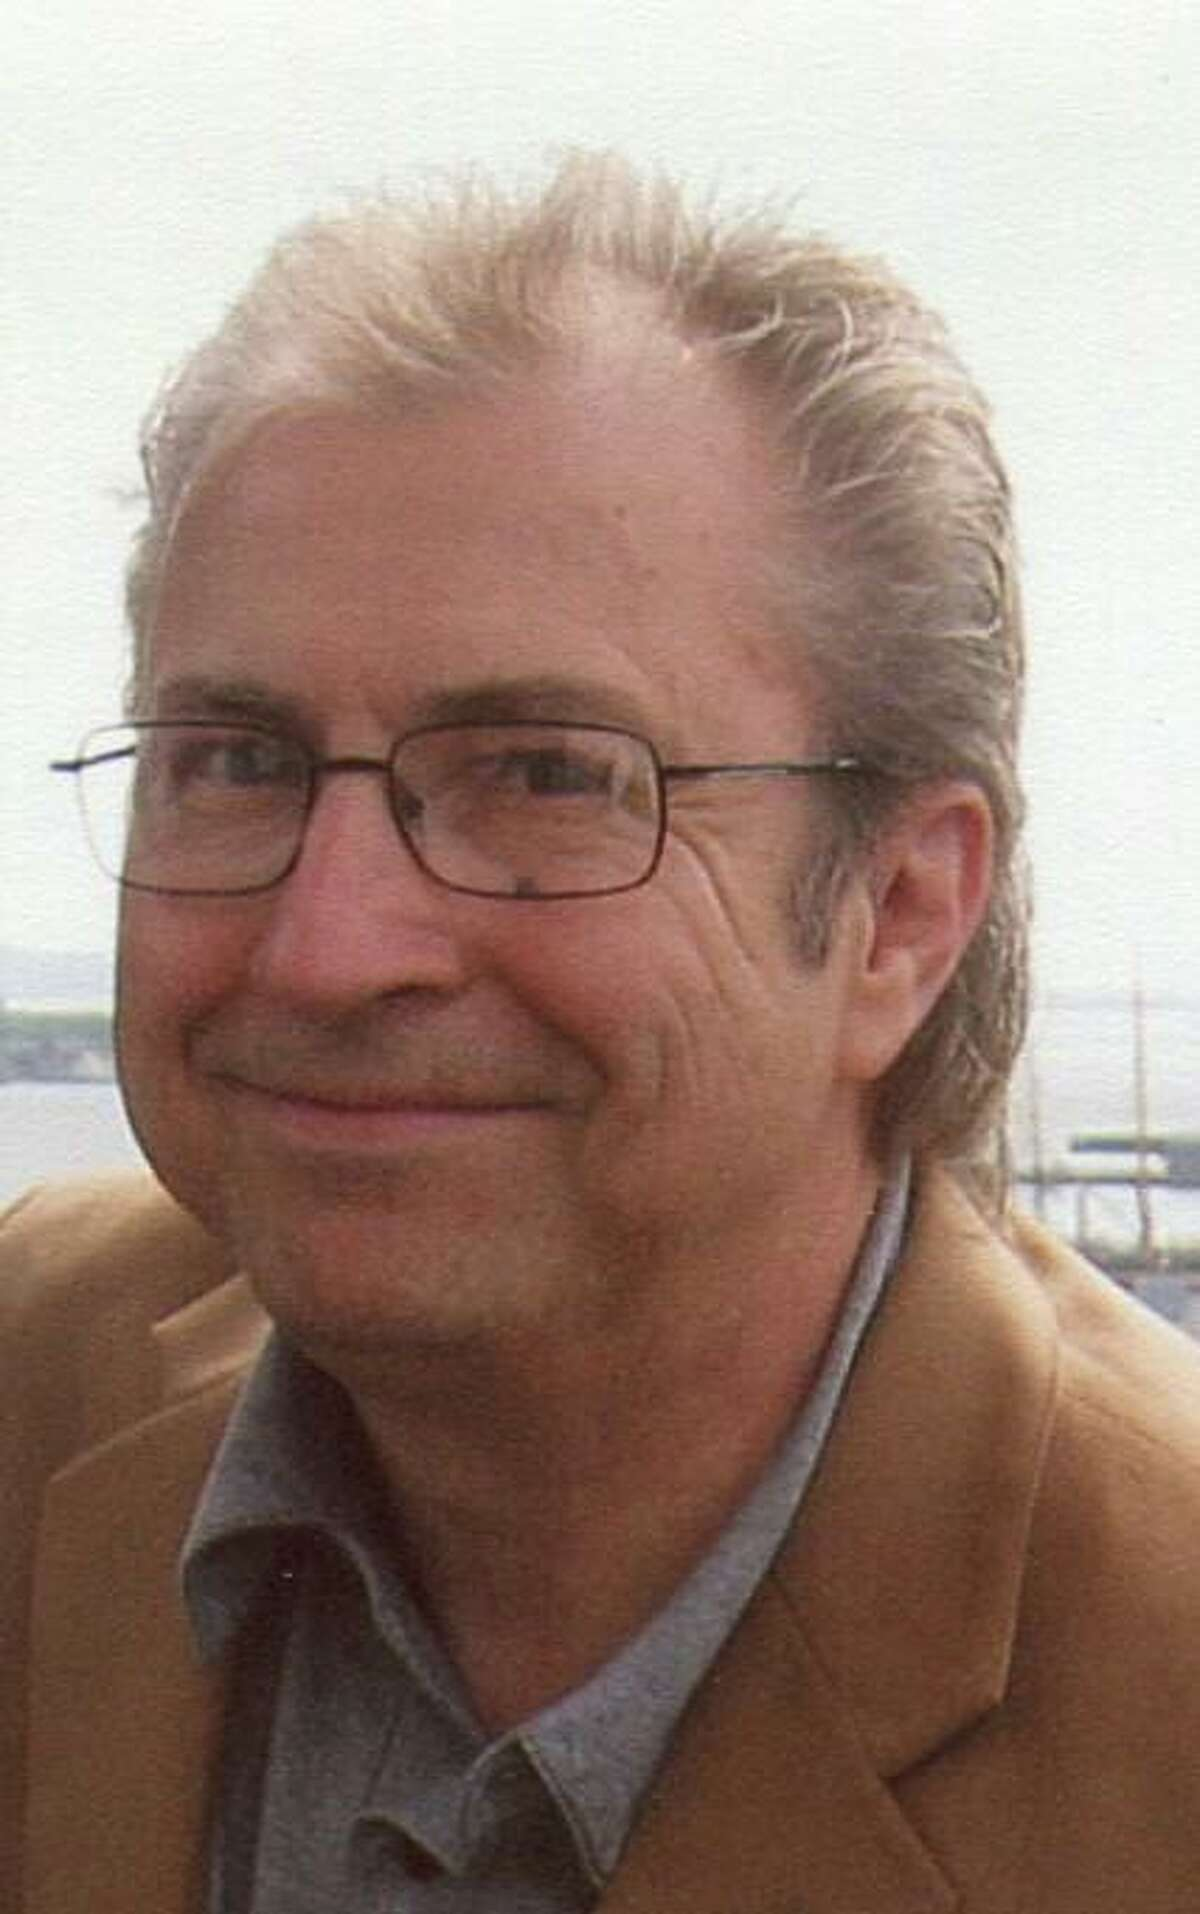 Cohoes native and freelance cartoonist John F. Caldwell died Feb. 21, 2016.